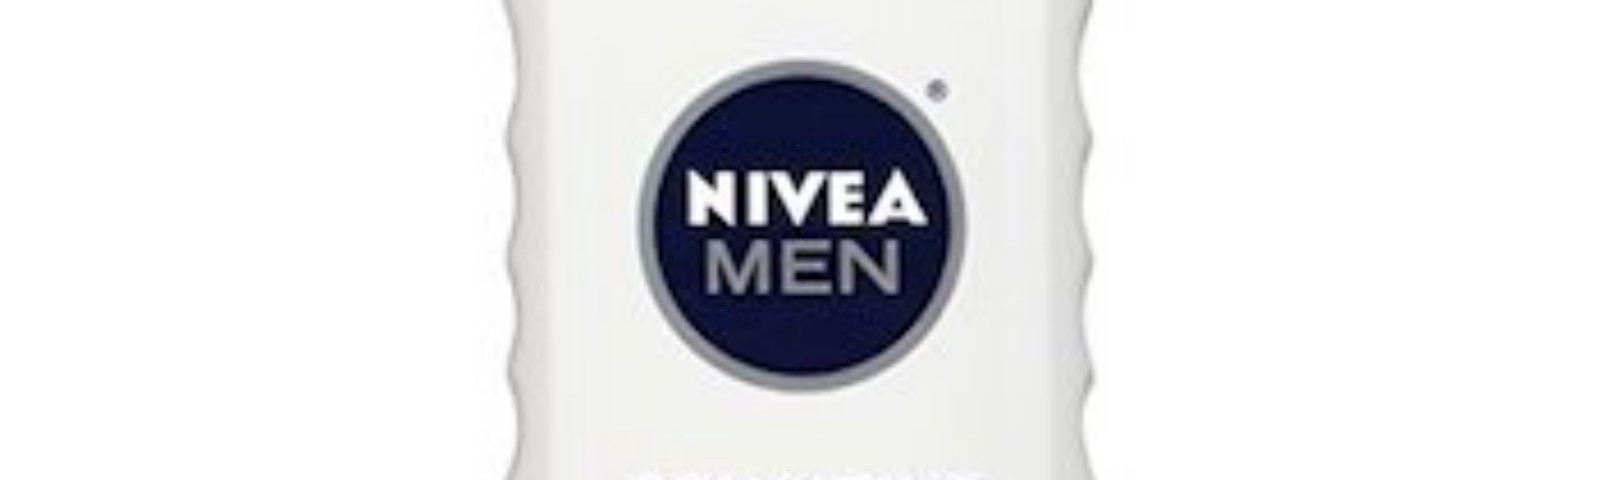 Sensitive 3 in 1 Body Wash by Nivea Men